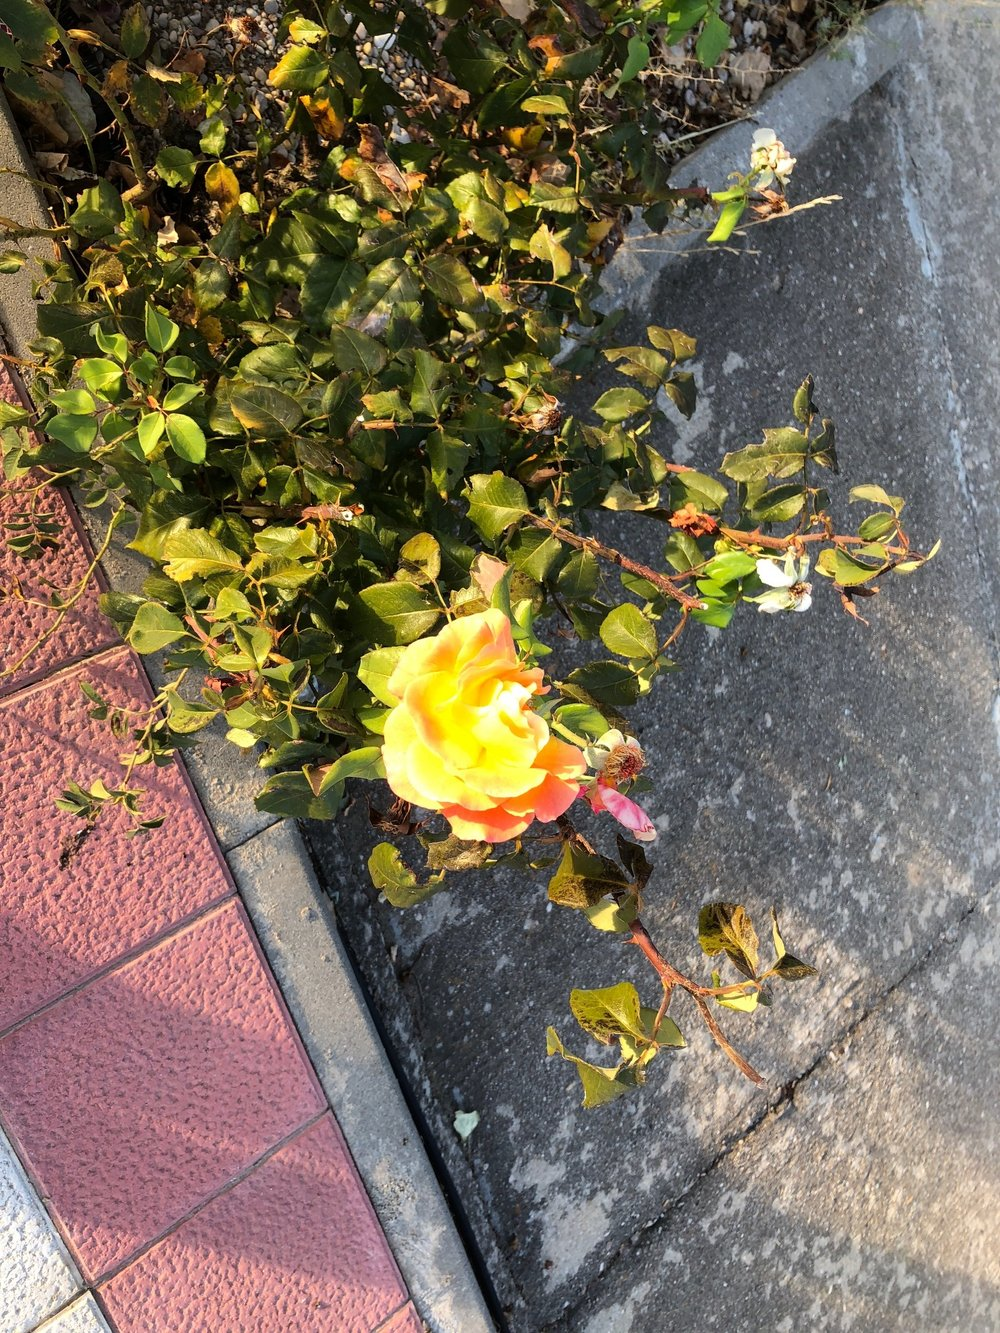 Copy of En route, a rose from St. Therese on her feast today.